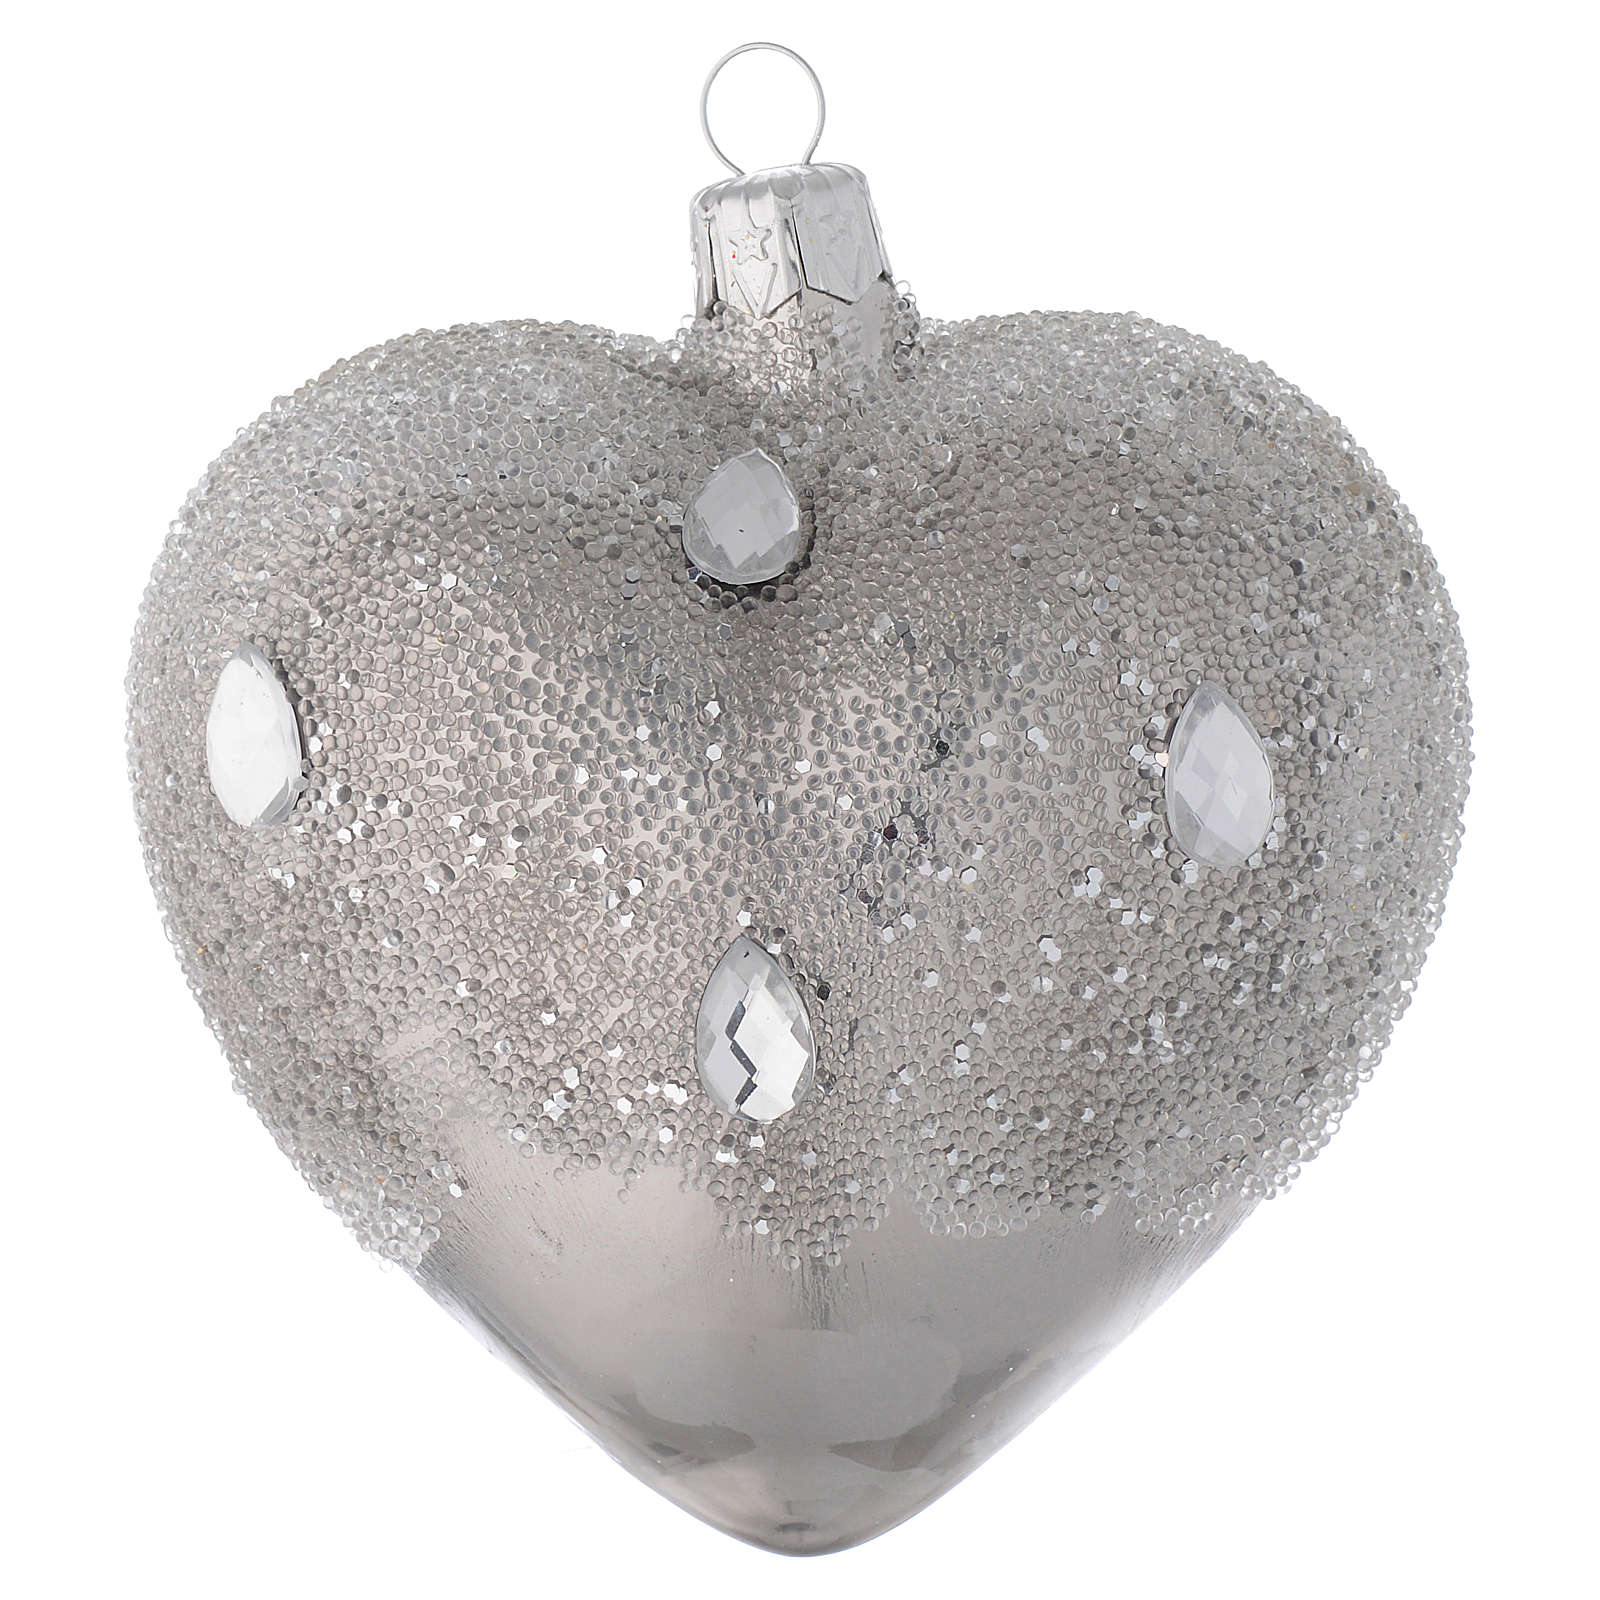 Heart Shaped Bauble in silver blown glass with ice effect decoration 100mm 4